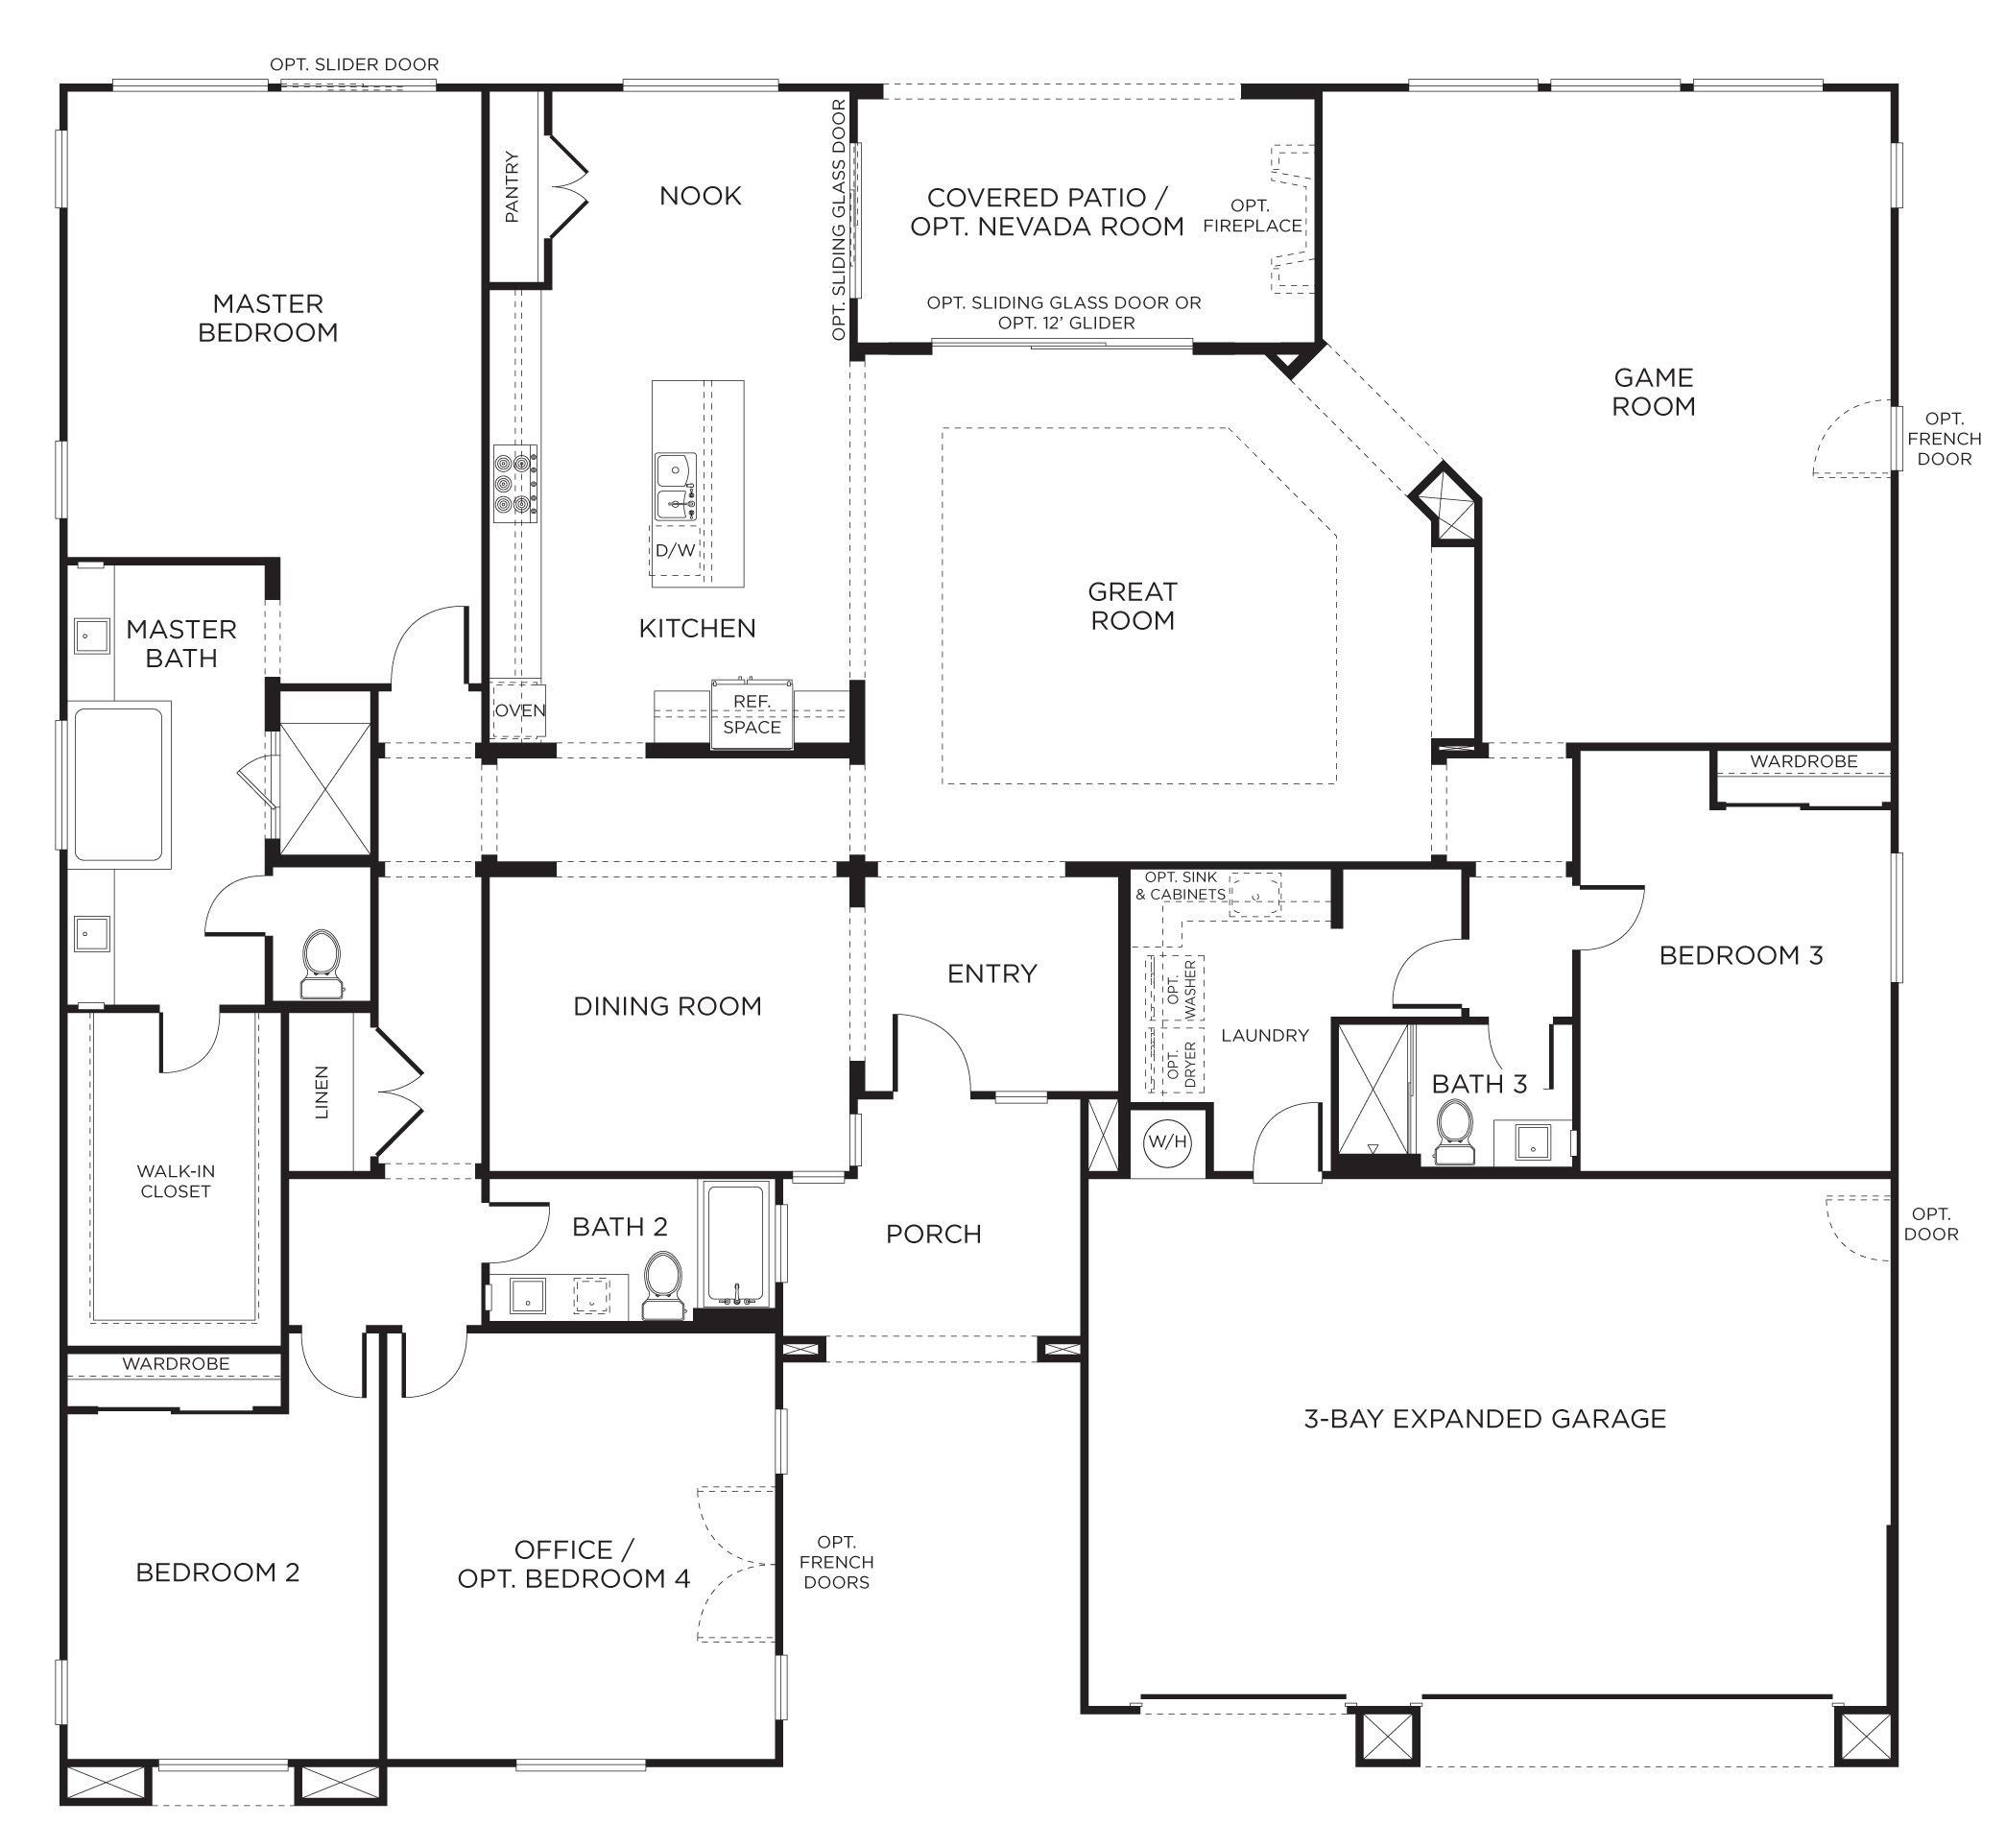 Floorplan 2 3 4 bedrooms 3 bathrooms 3400 square feet 1 story home floor plans